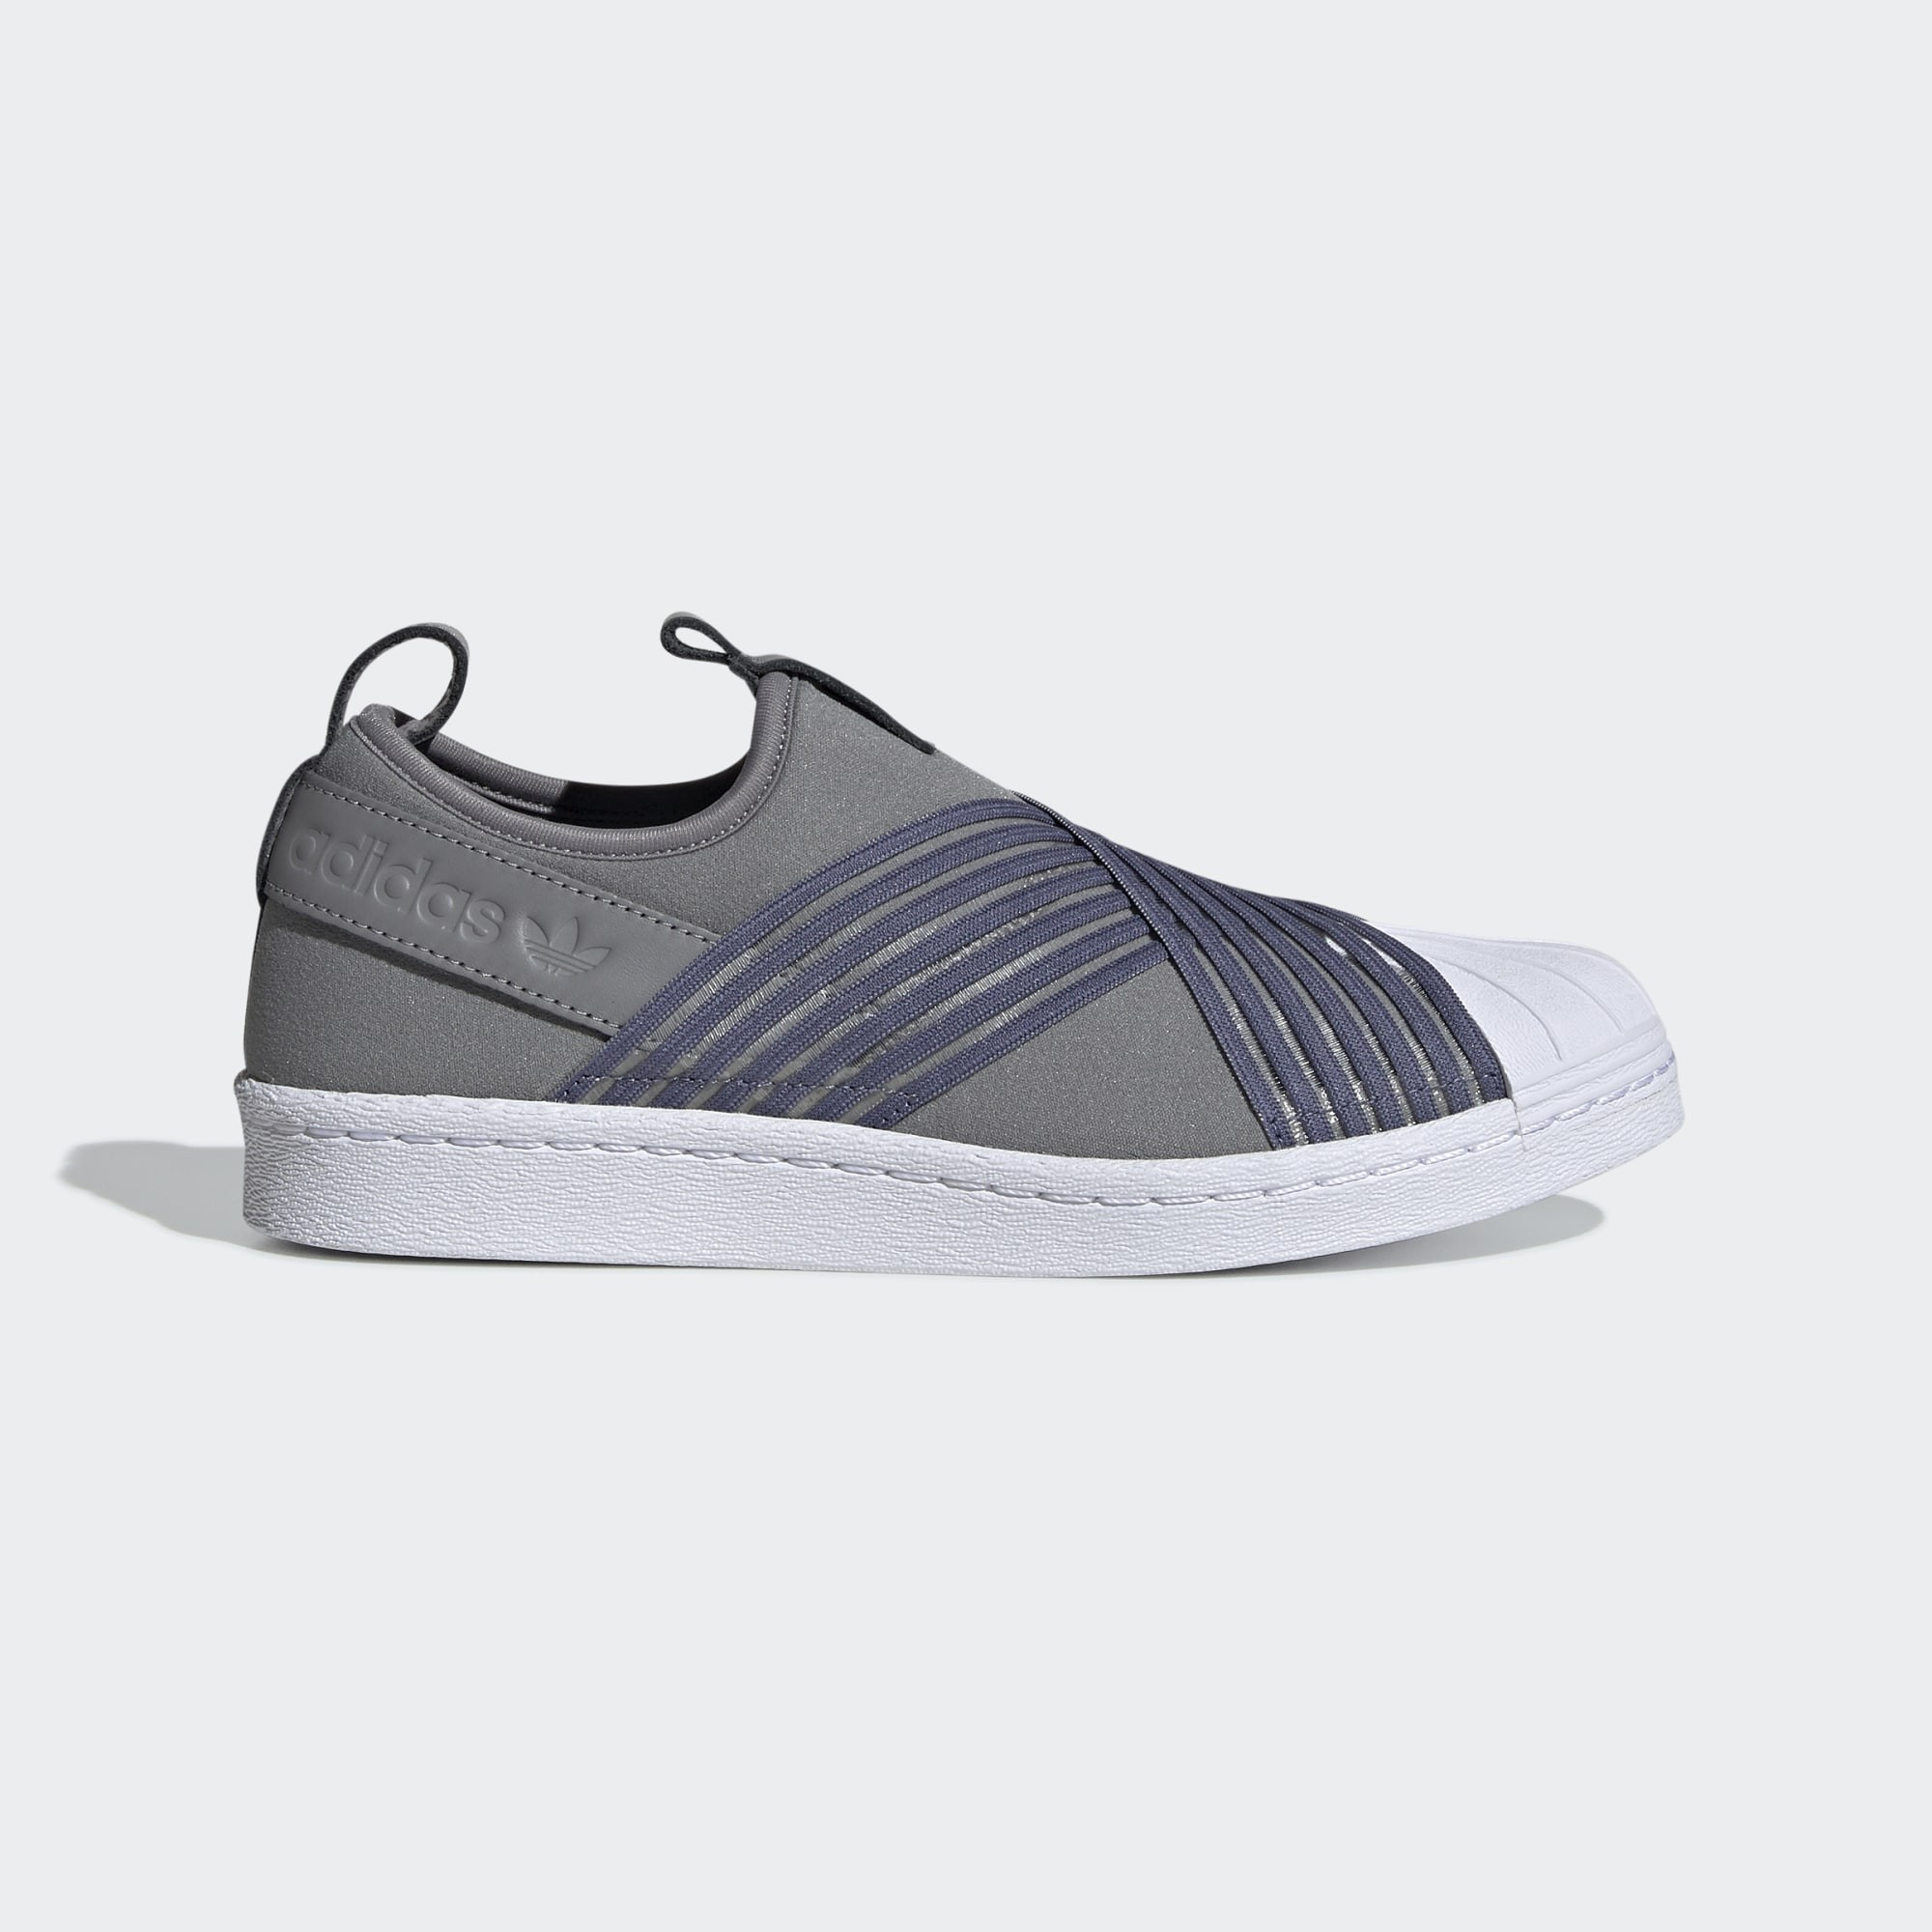 adidas Superstar Slip-On Shoes Grey CG6012